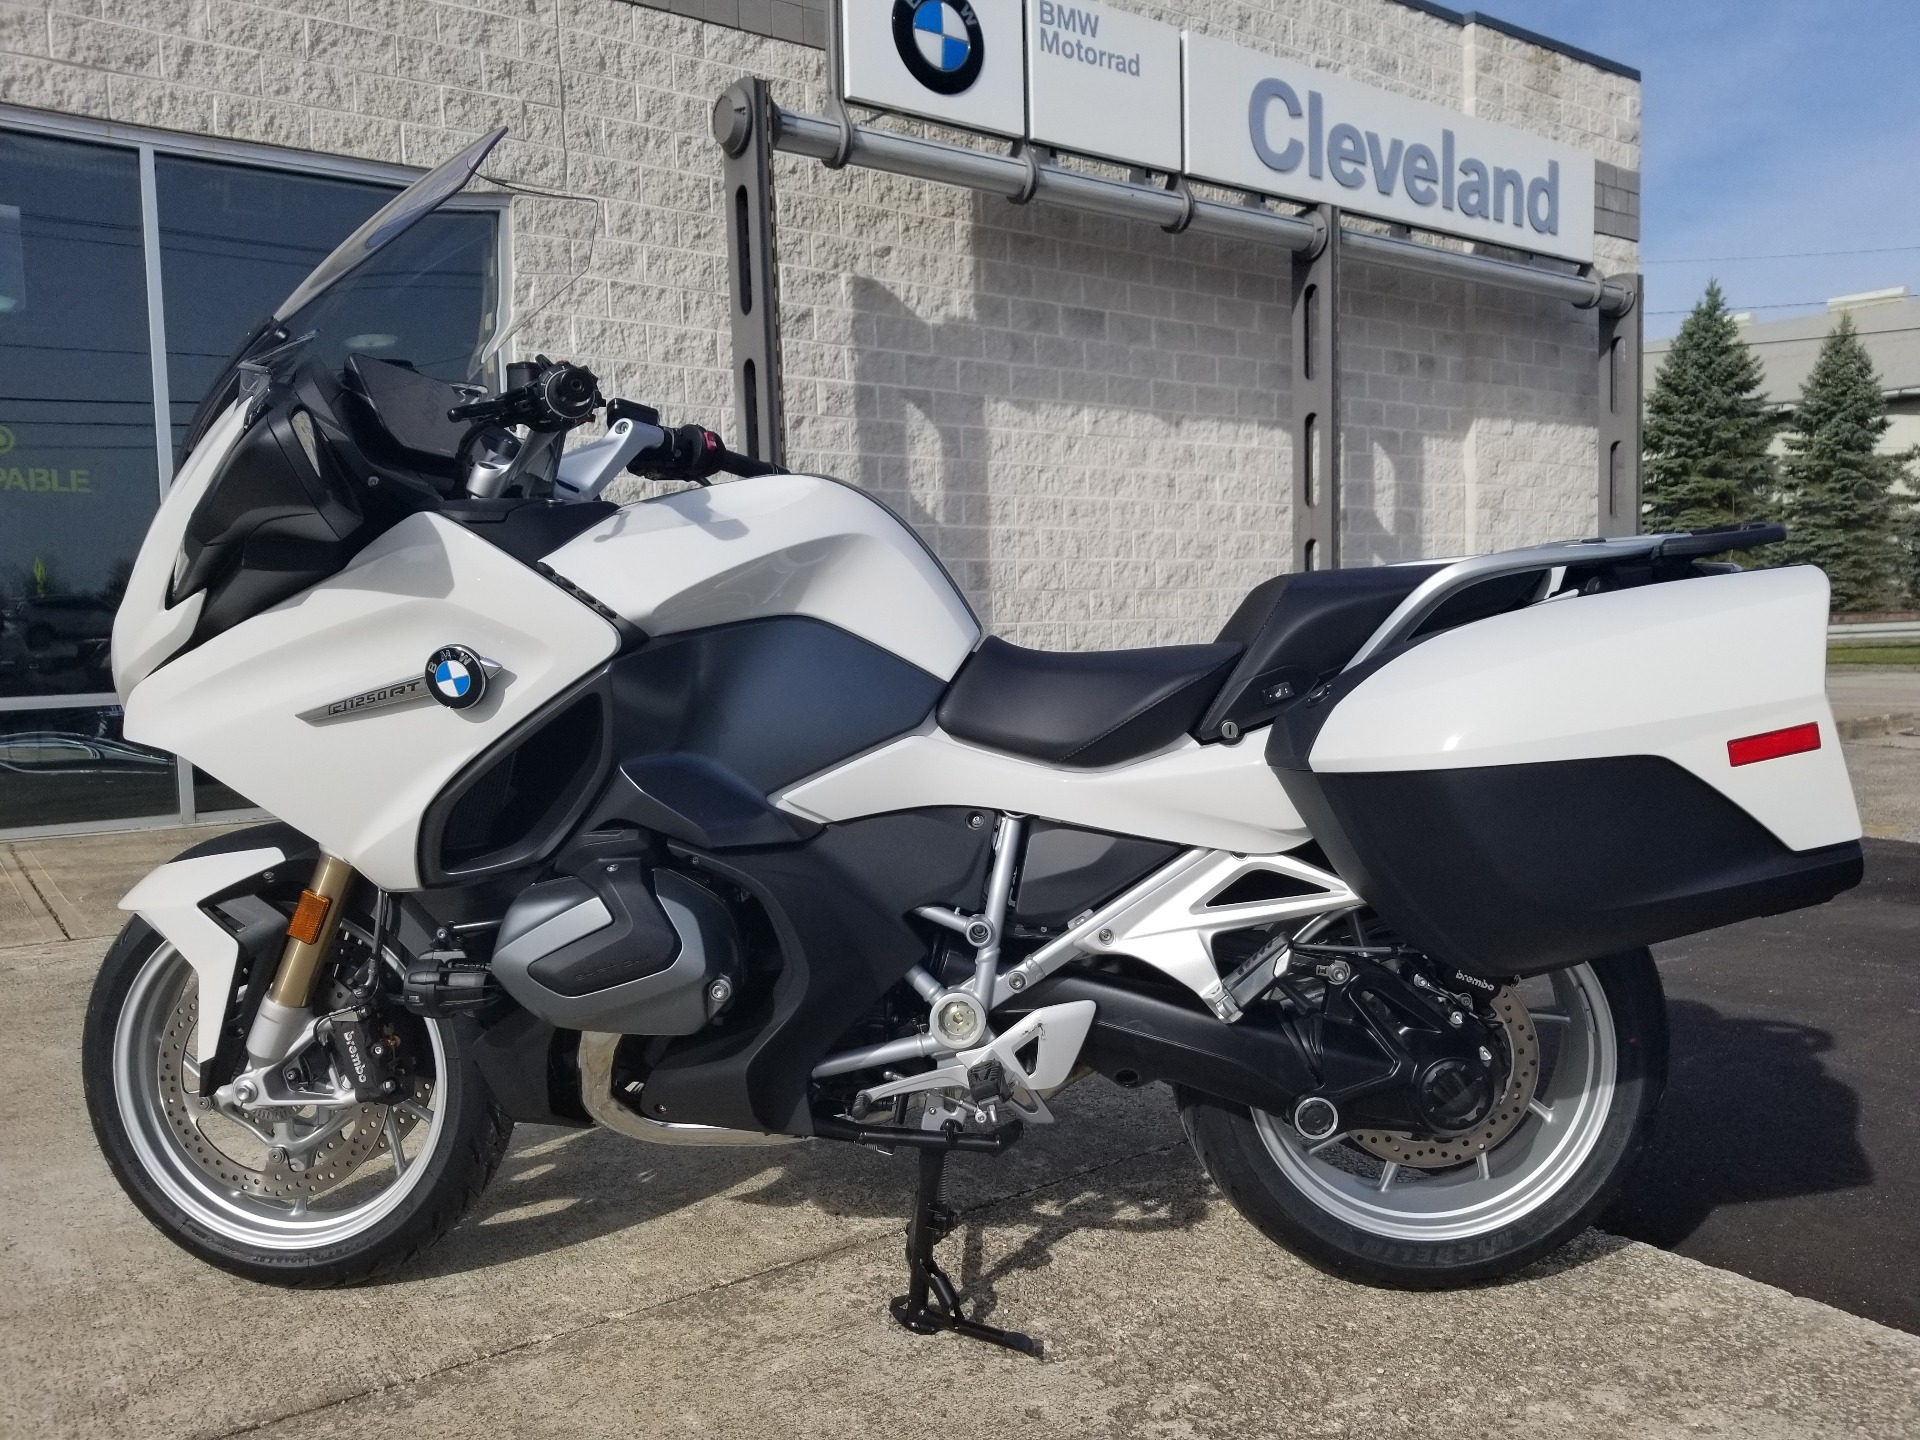 2021 BMW R 1250 RT in Aurora, Ohio - Photo 2